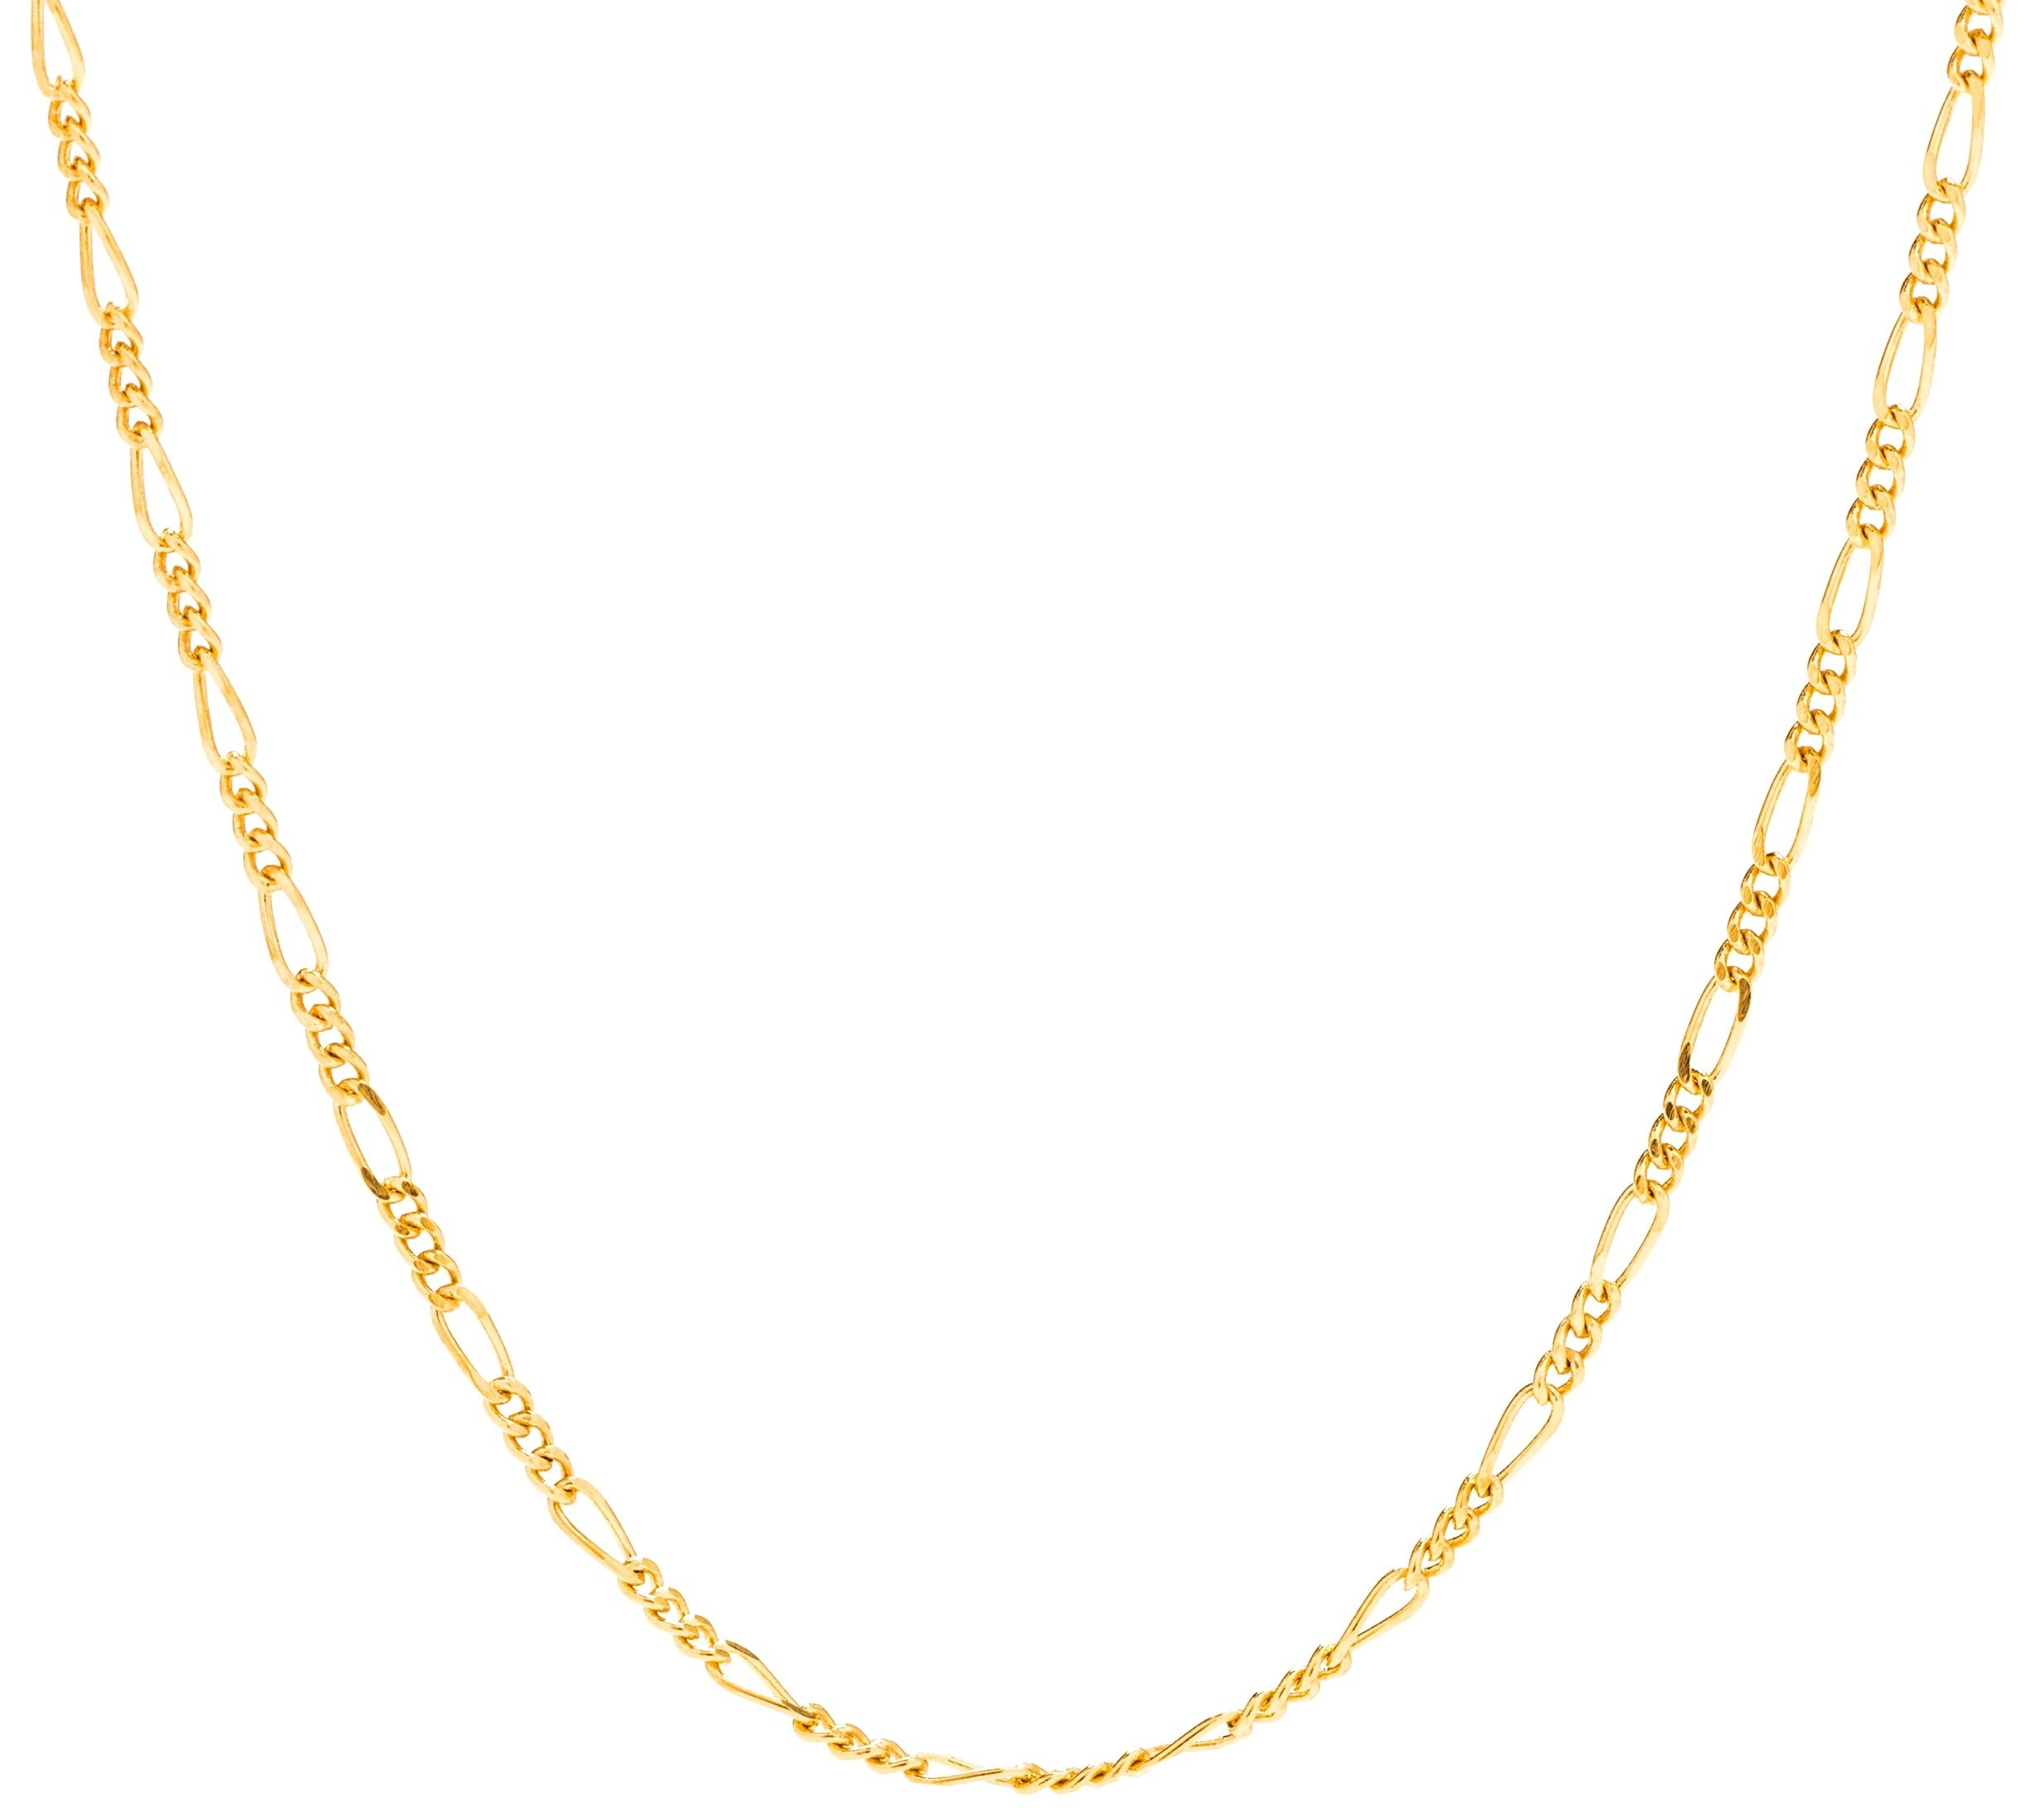 Lifetime Jewelry Figaro Chain 1.5MM, 24K Gold with Inlaid Bronze, Premium Fashion Jewelry, Pendant Necklace Made Thin For Charms, Guaranteed for Life, 18 Inches by Lifetime Jewelry (Image #1)